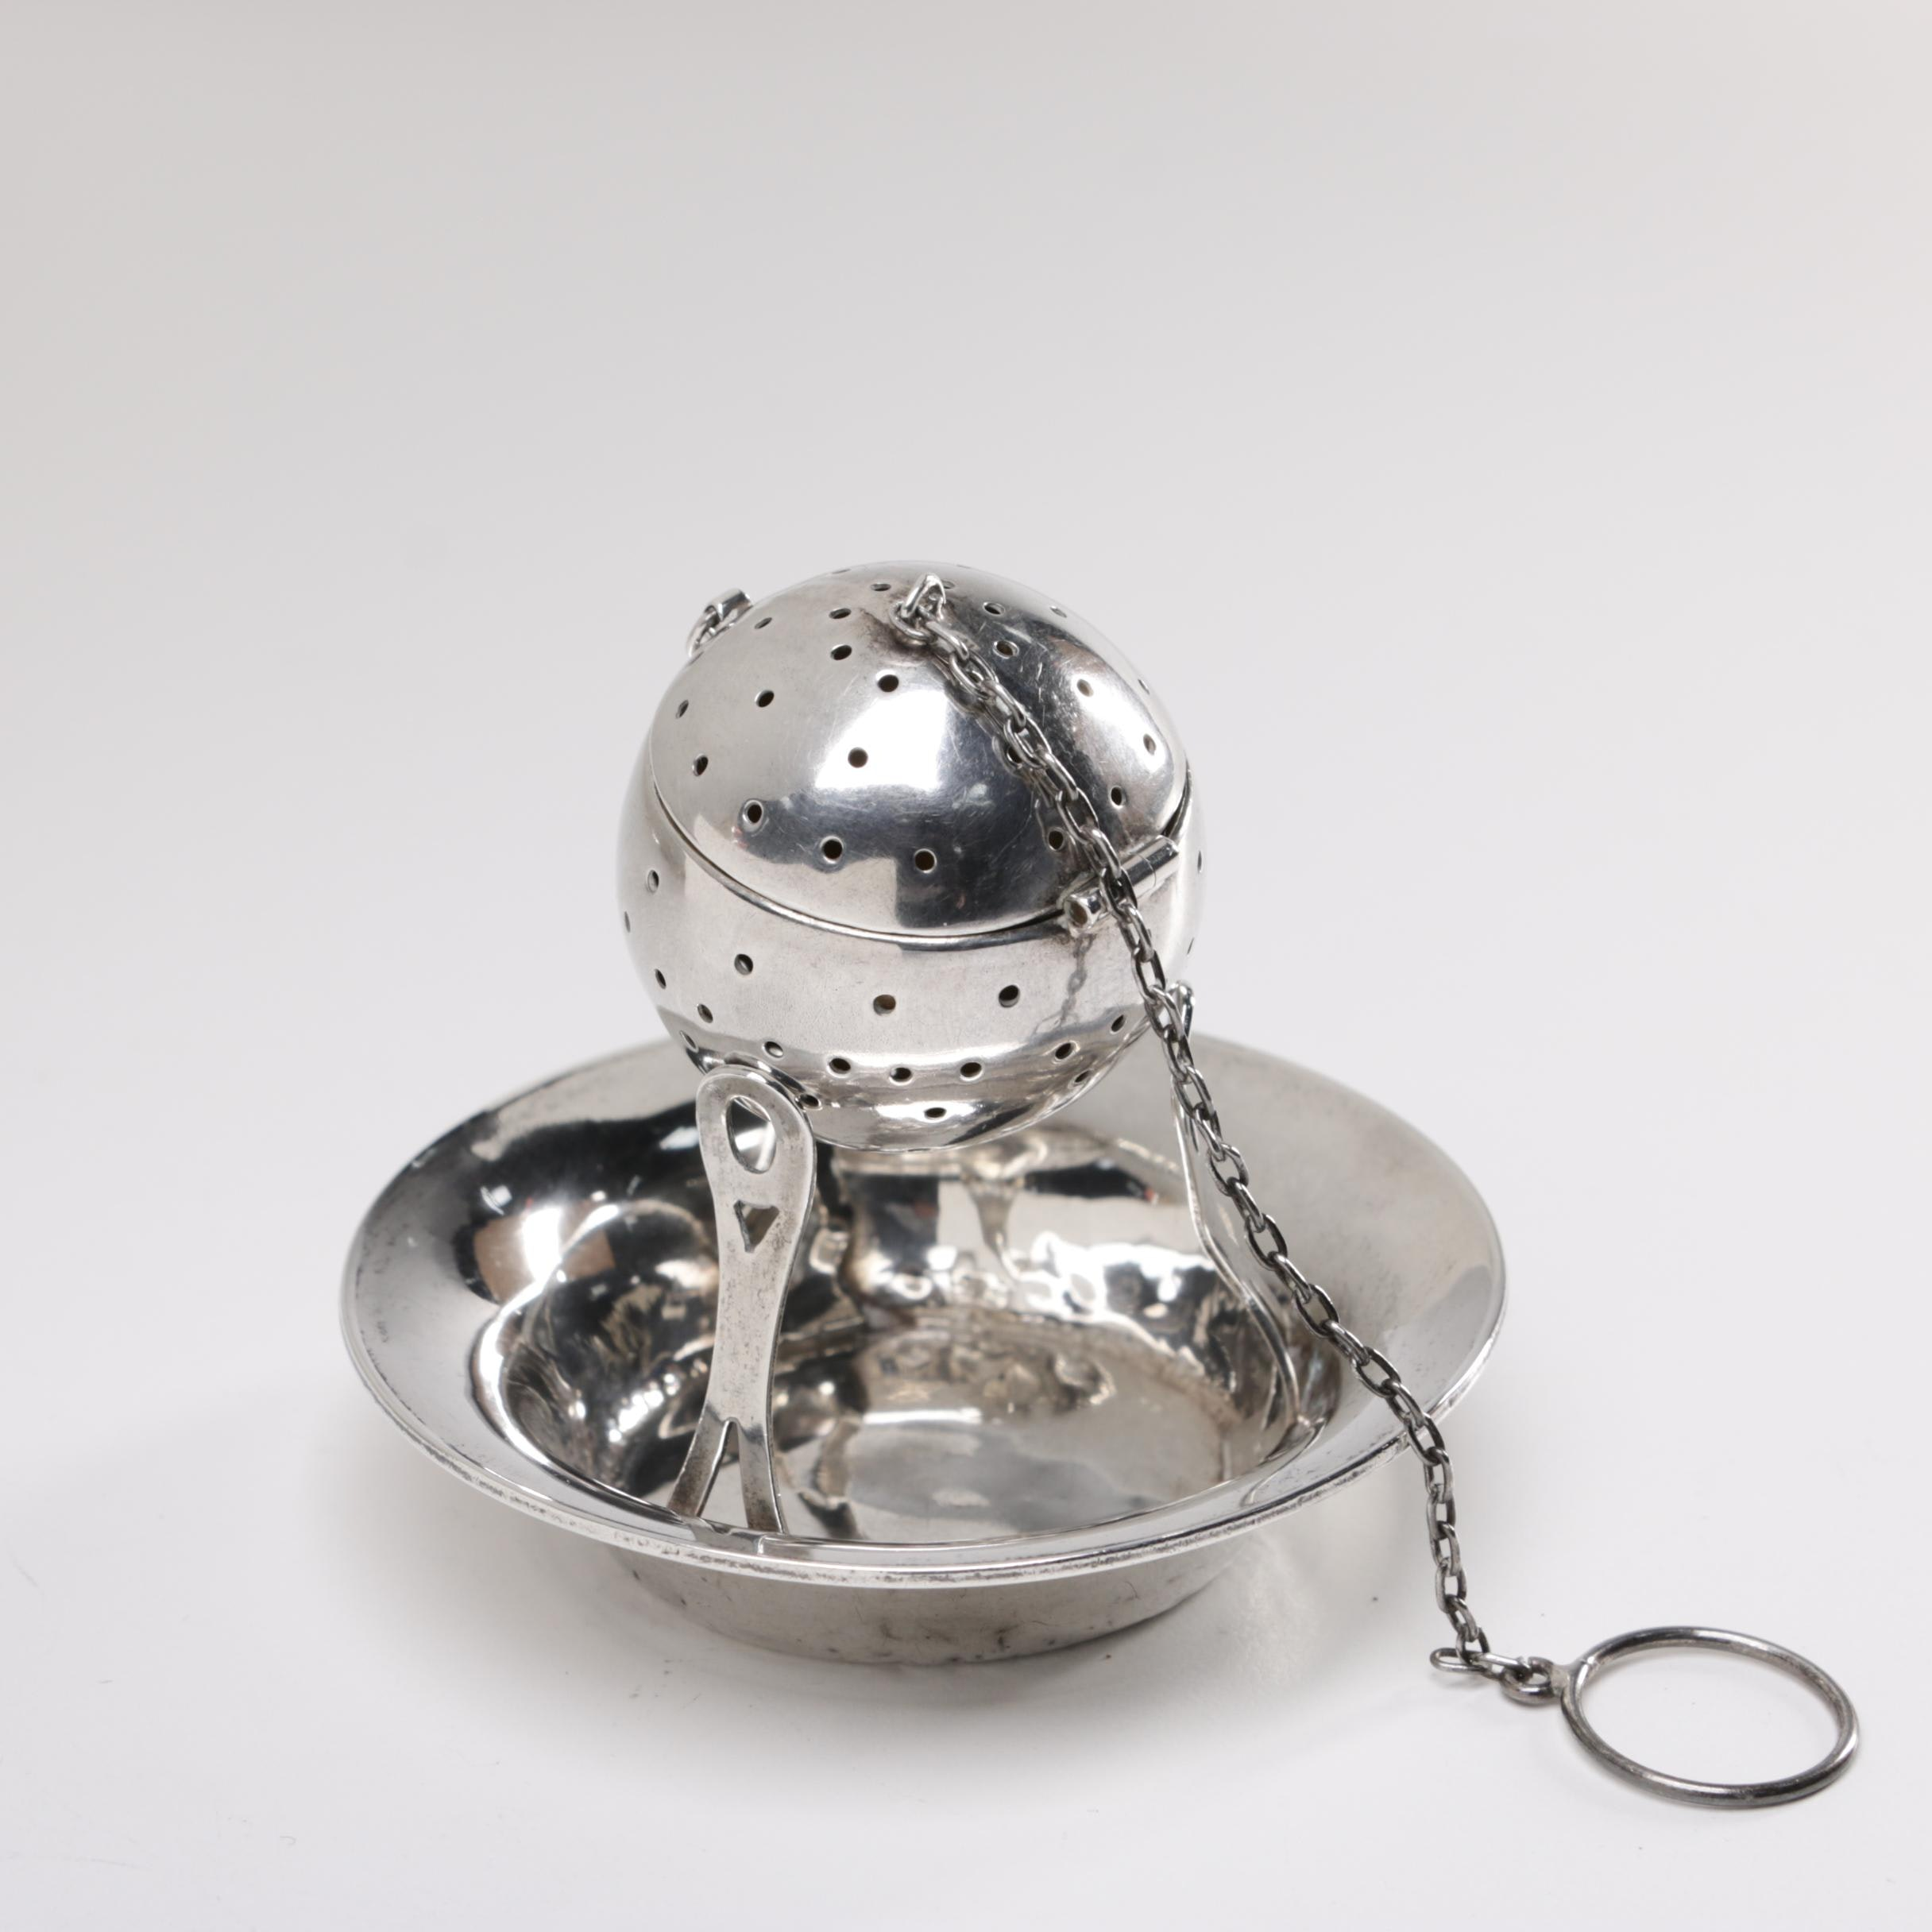 Webster Co. Sterling Tea Infuser and Drip Bowl, Early 20th Century